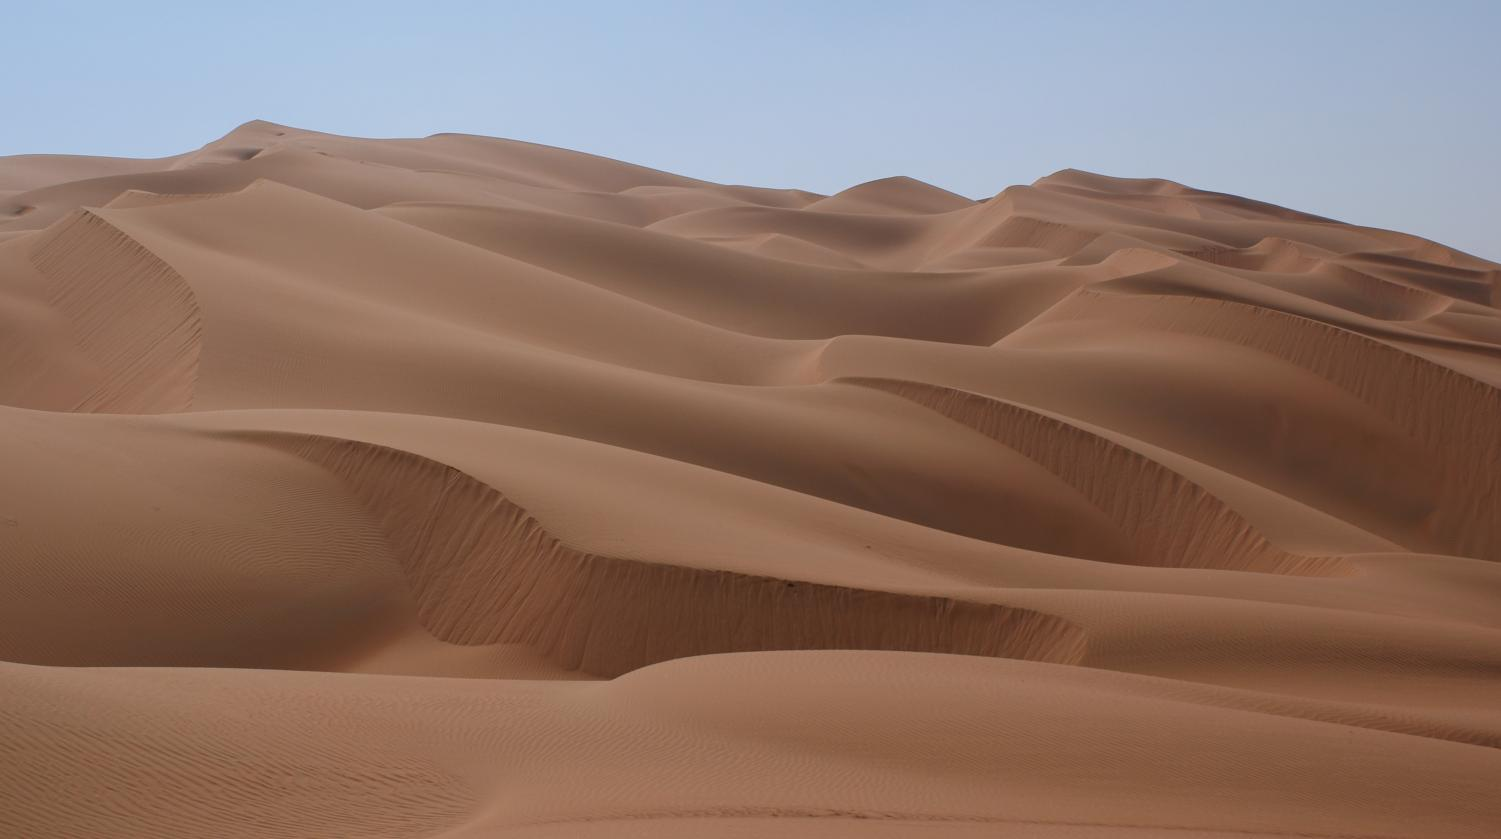 Parched means to be very dry, like in the desert.